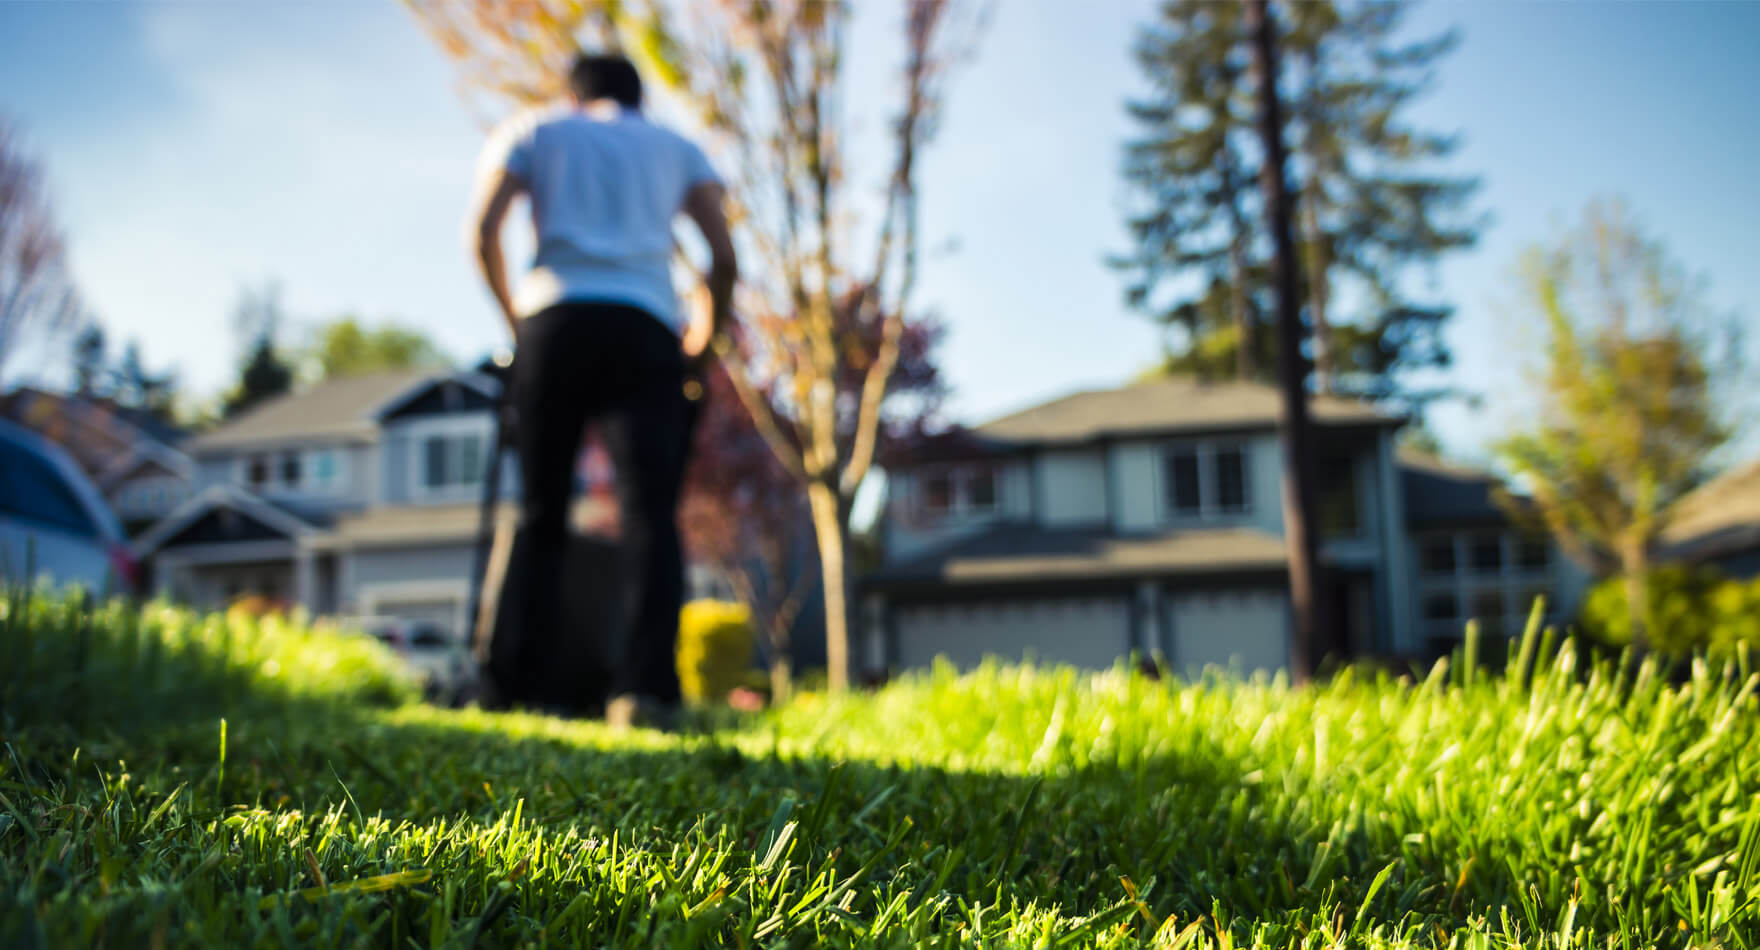 1 Lawn Care Scheduling & Billing Software in 2019 | Jobber